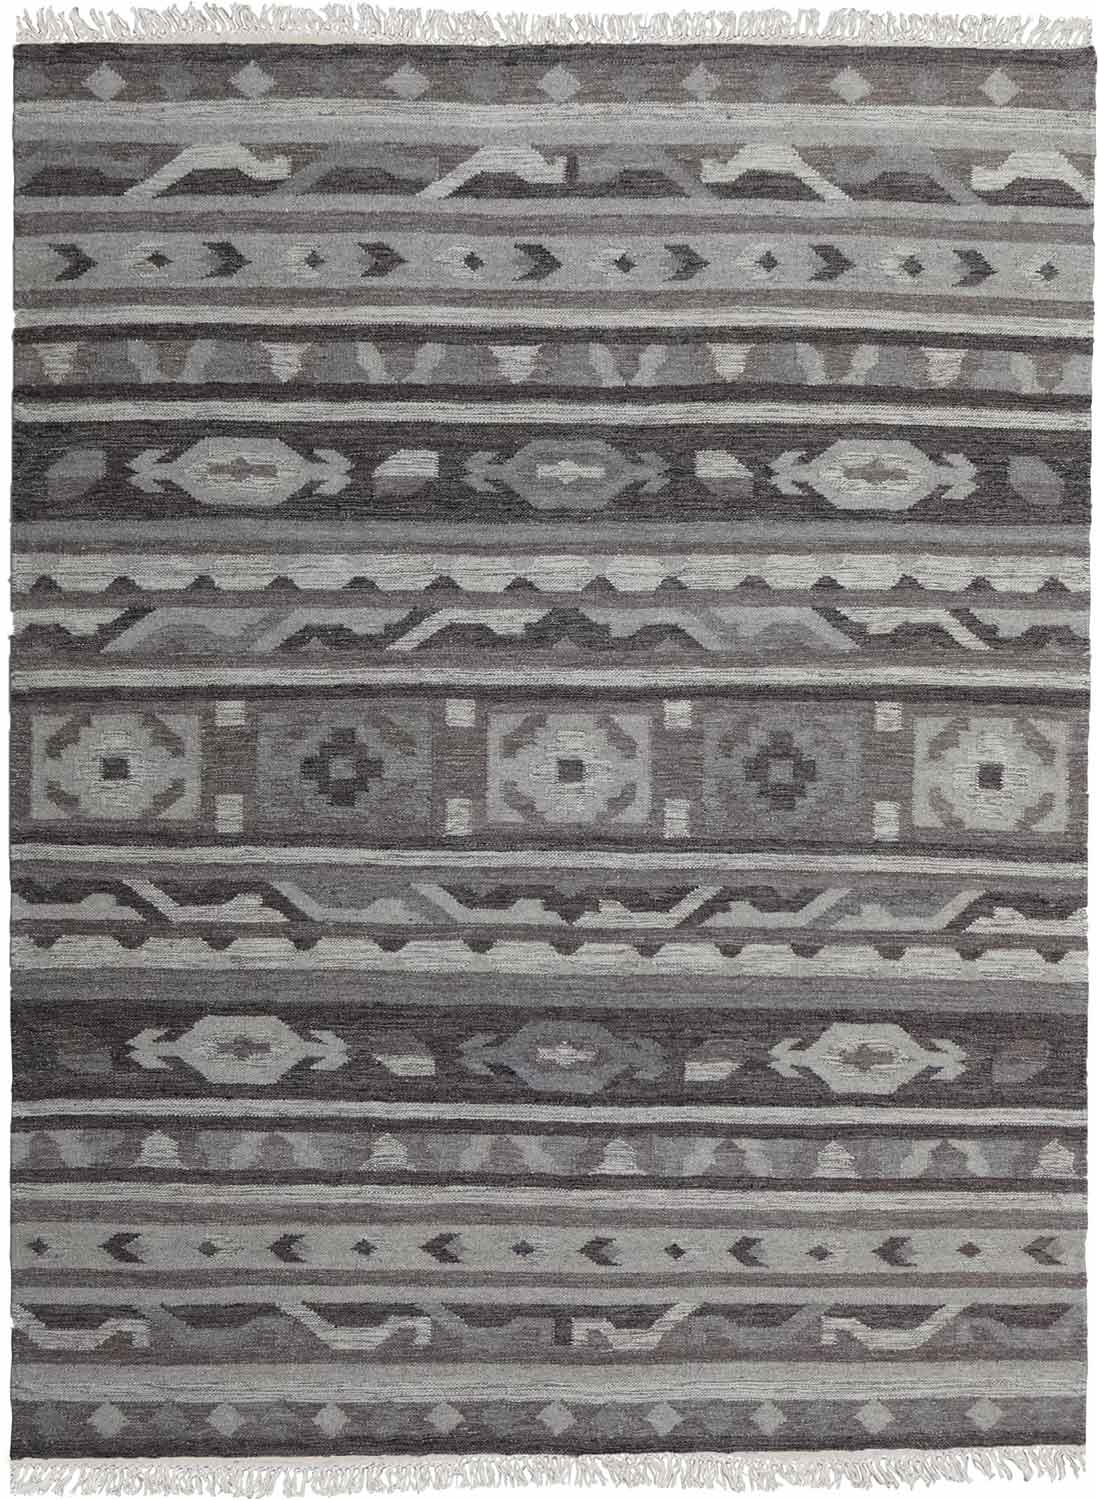 Ren-Wil RCAN-01-58 Canyon Rug - Multi color